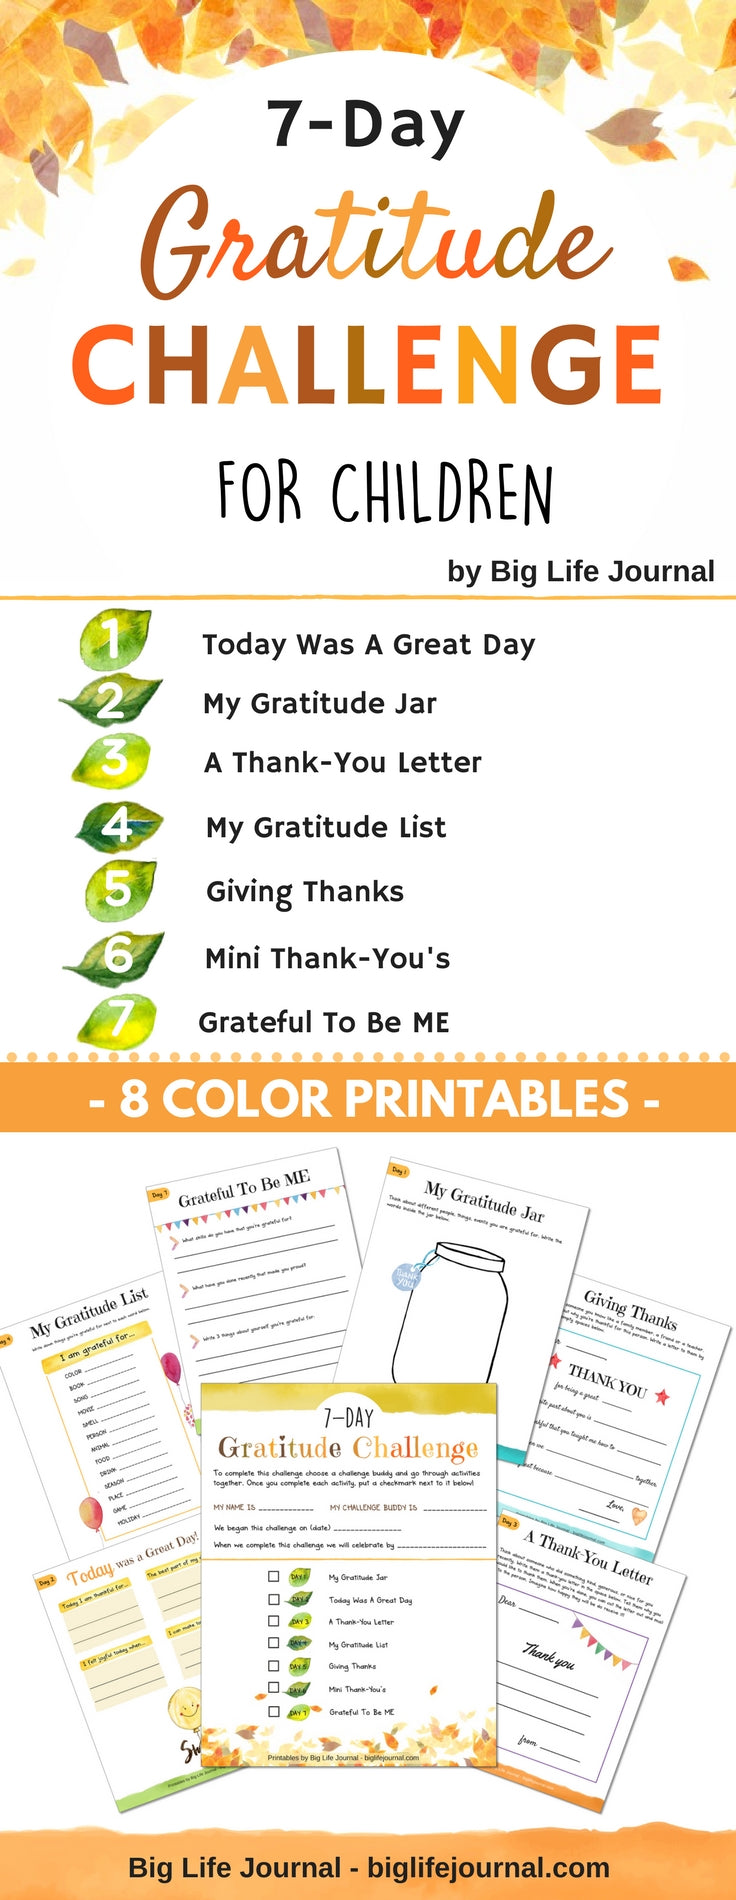 Printable gratitude challenge for children. A great activity for home or a classroom.